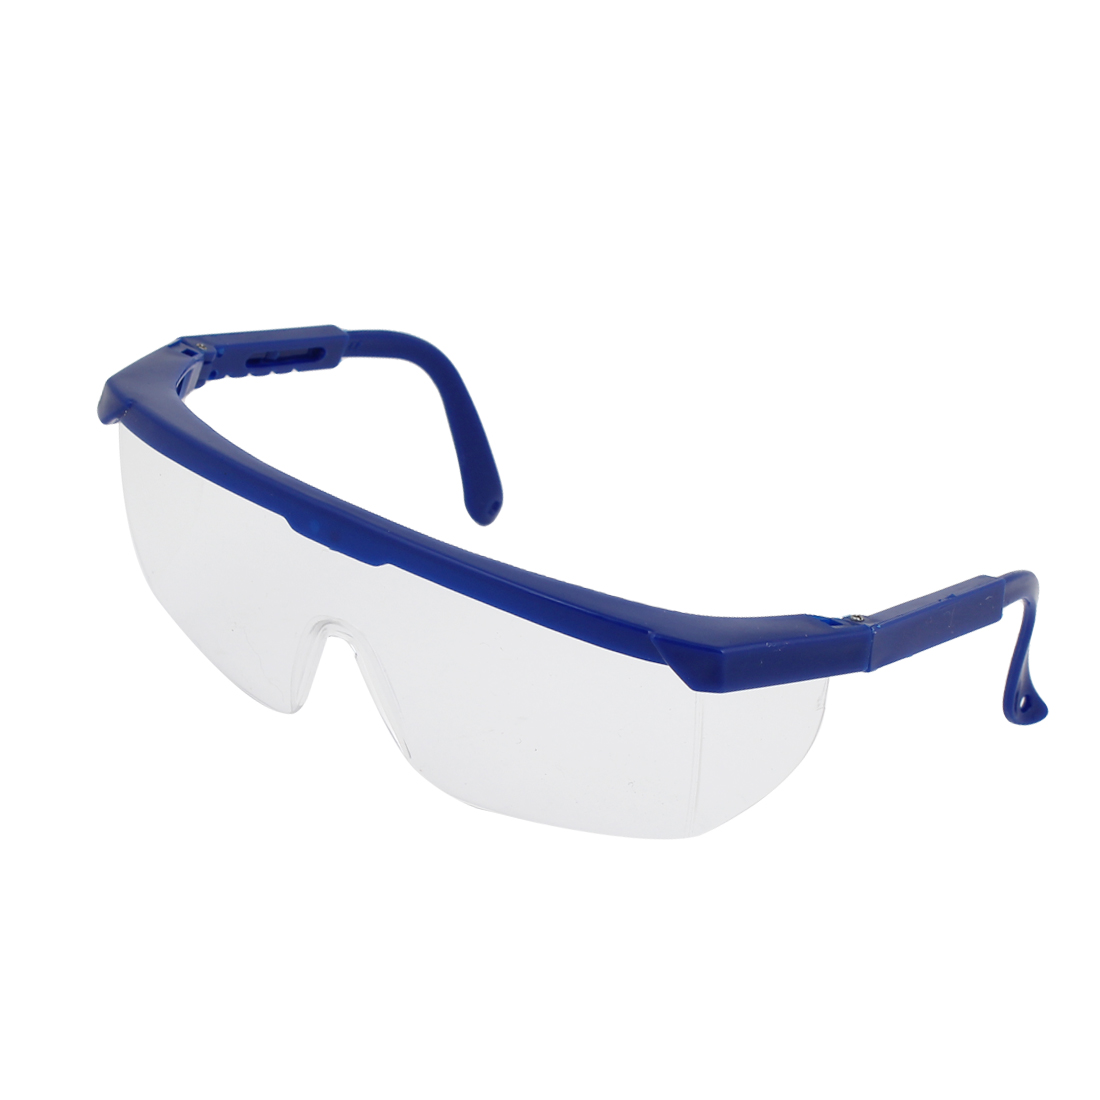 Man Blue Rubberized Plastic Arms Half Rim Eyes Goggles